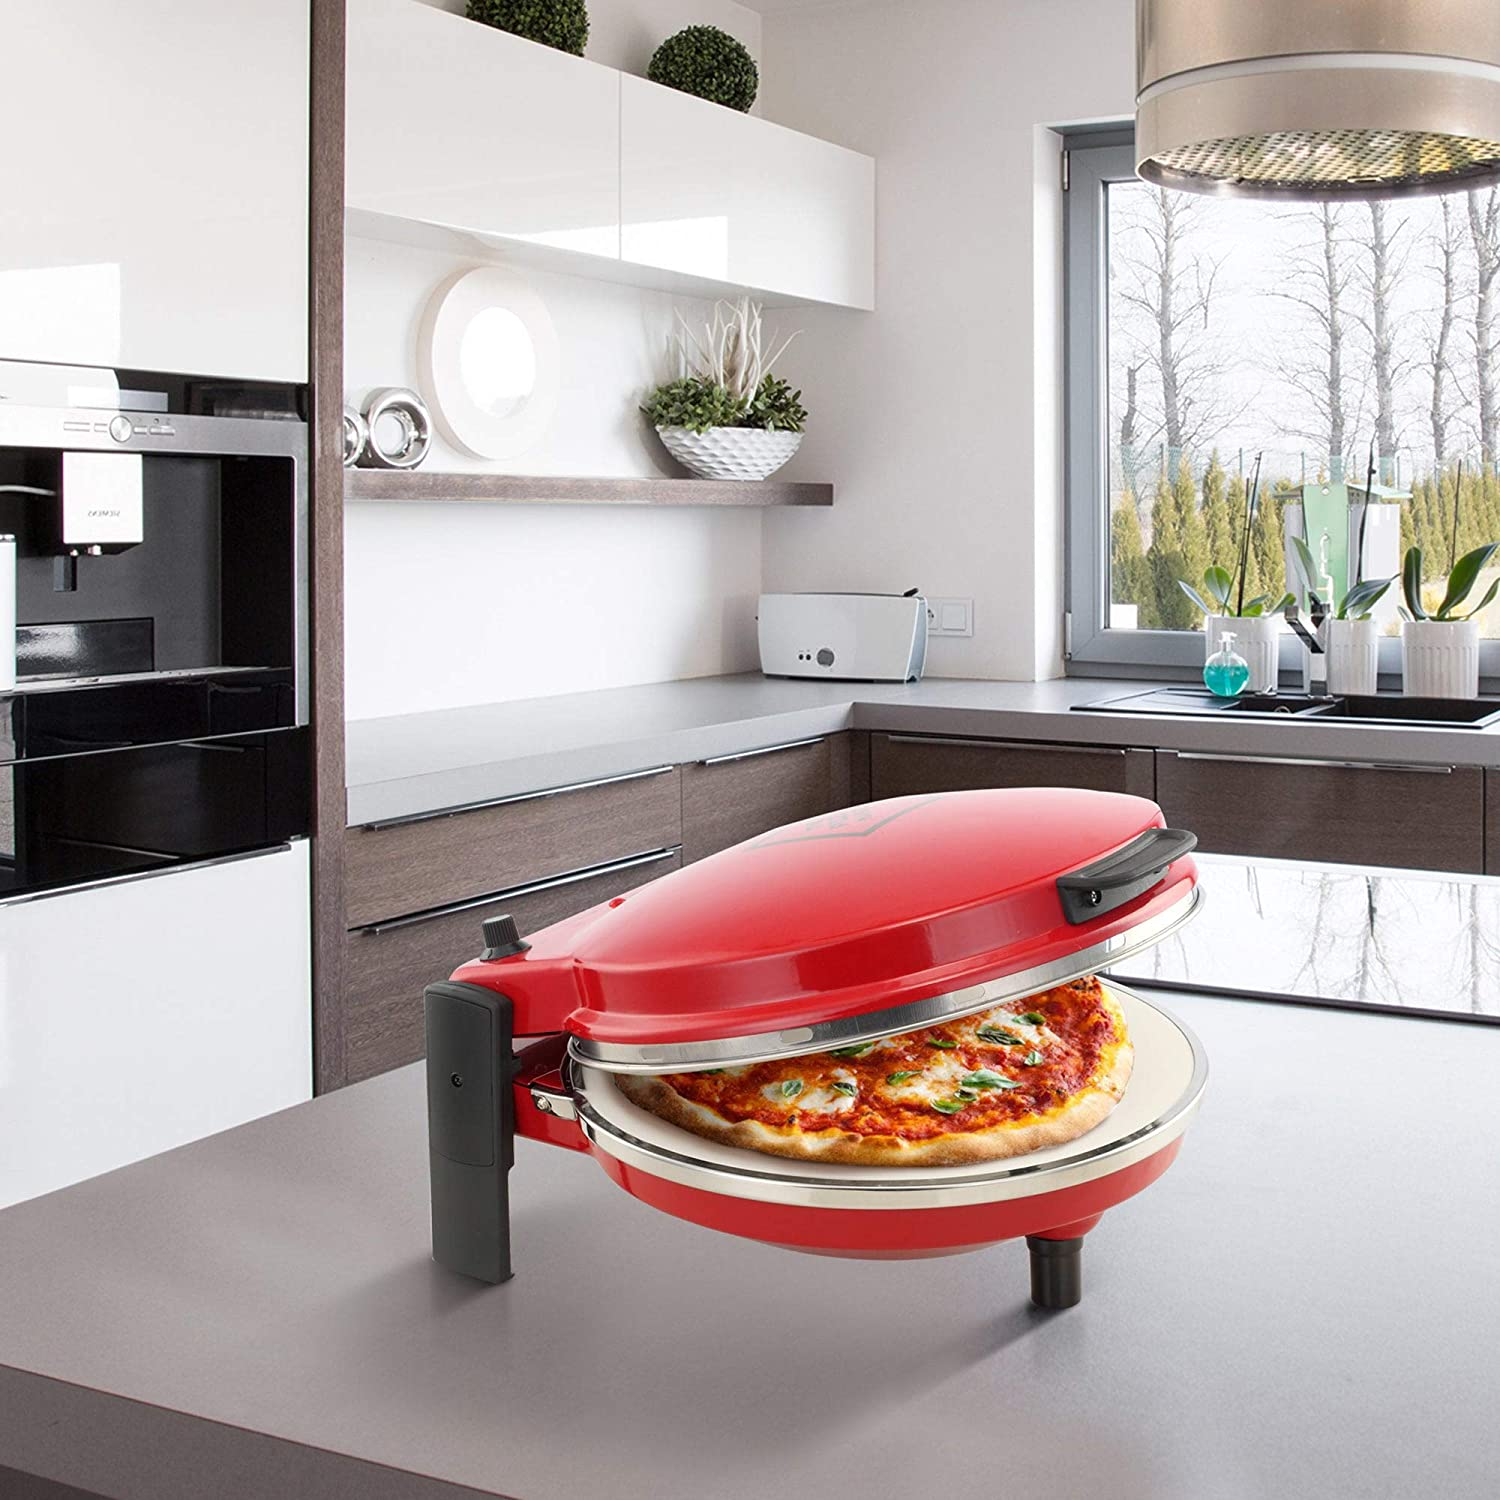 Chef Di Cucina Pizza Maker - Perfect Base with Ceramic Stone, Easy Clean with Paddle